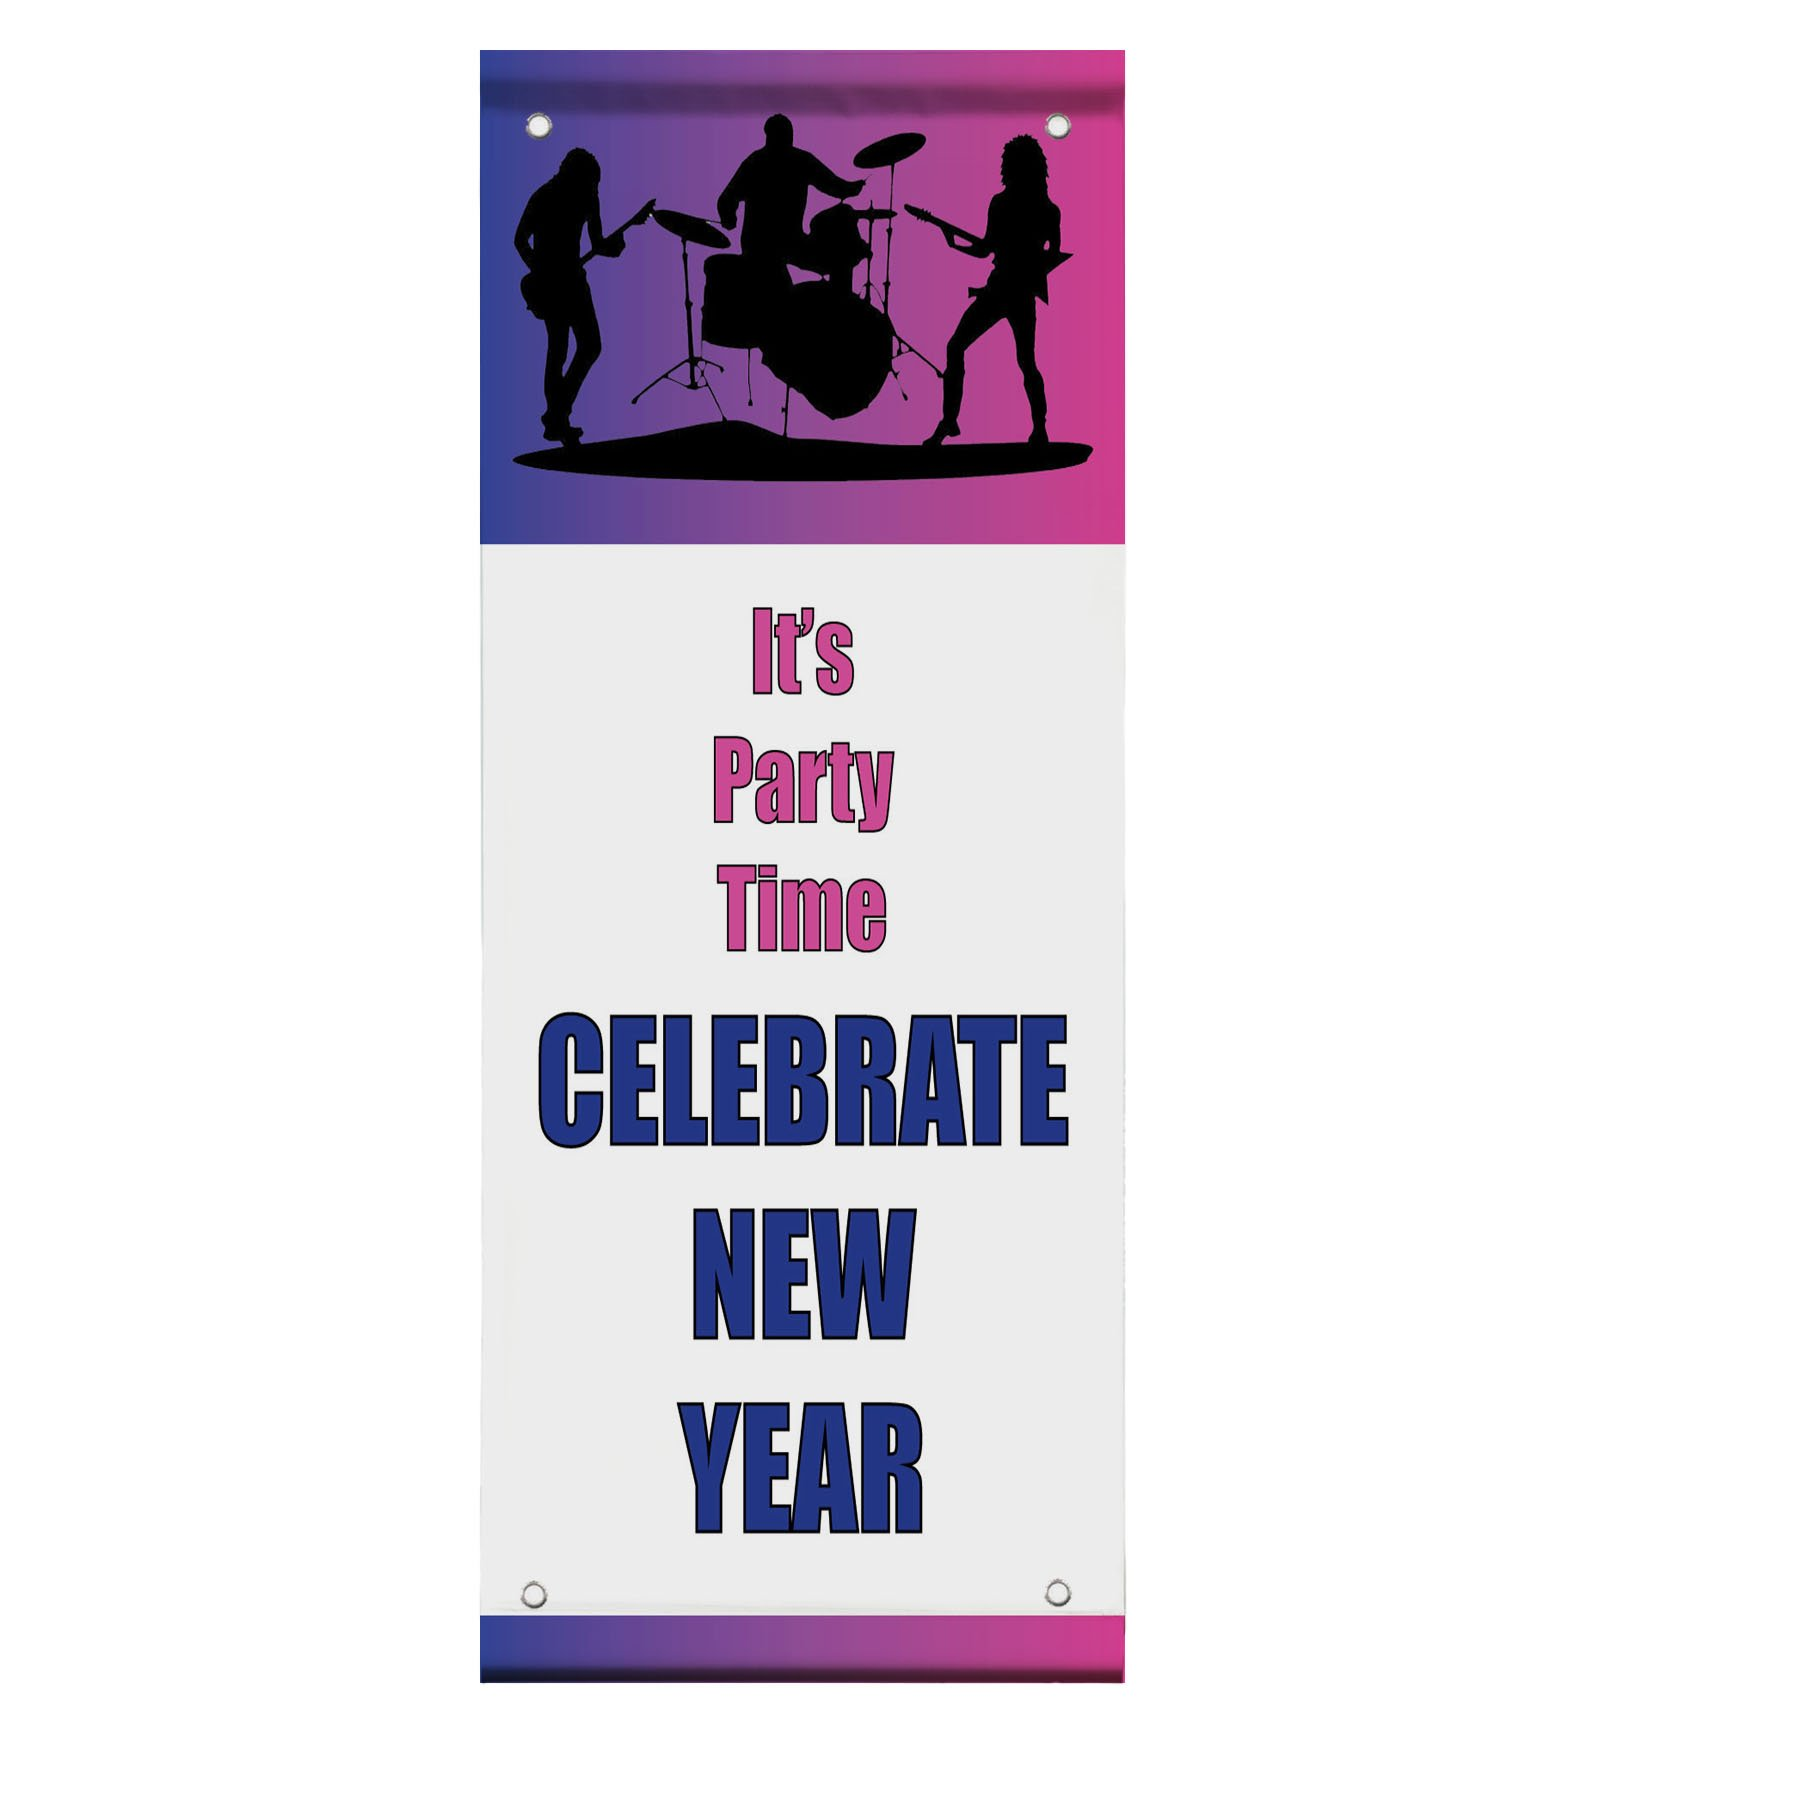 It'S Party Time Celebrate New Year Double Sided Vertical Pole Banner Sign 30 in x 60 in w/ Pole Bracket